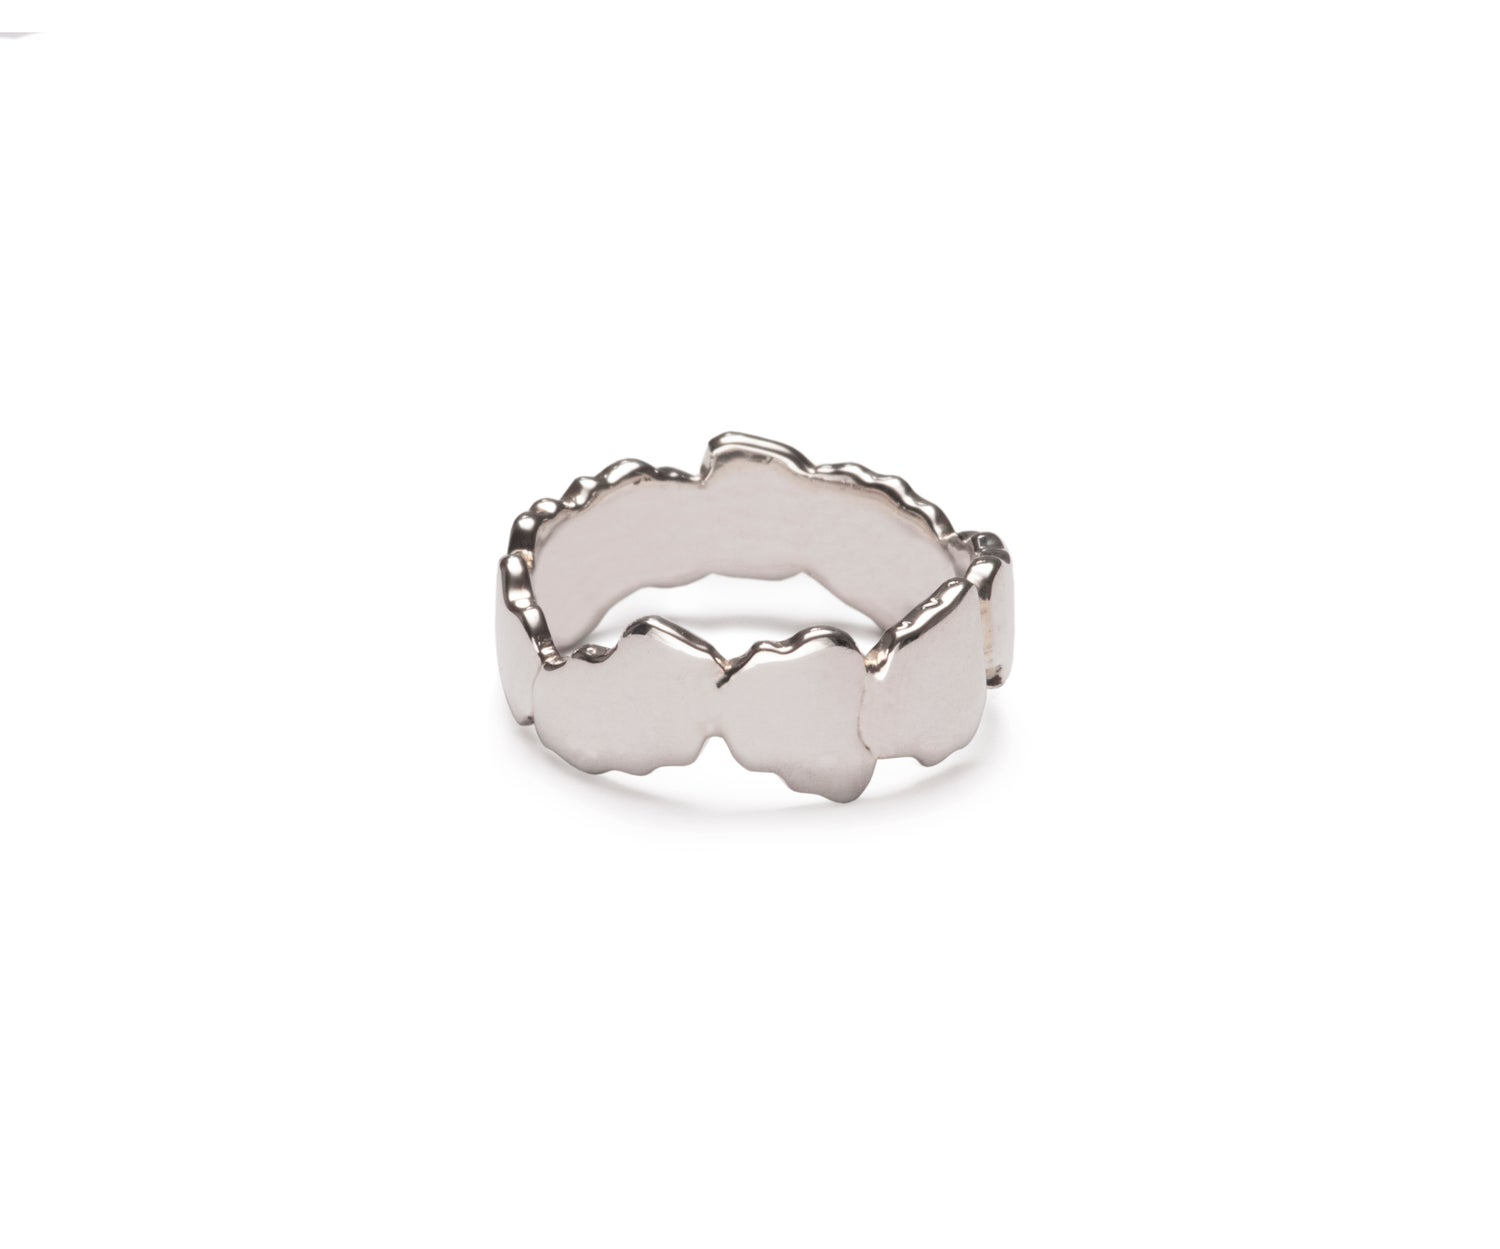 Image of Sterling Silver Cracked Ring